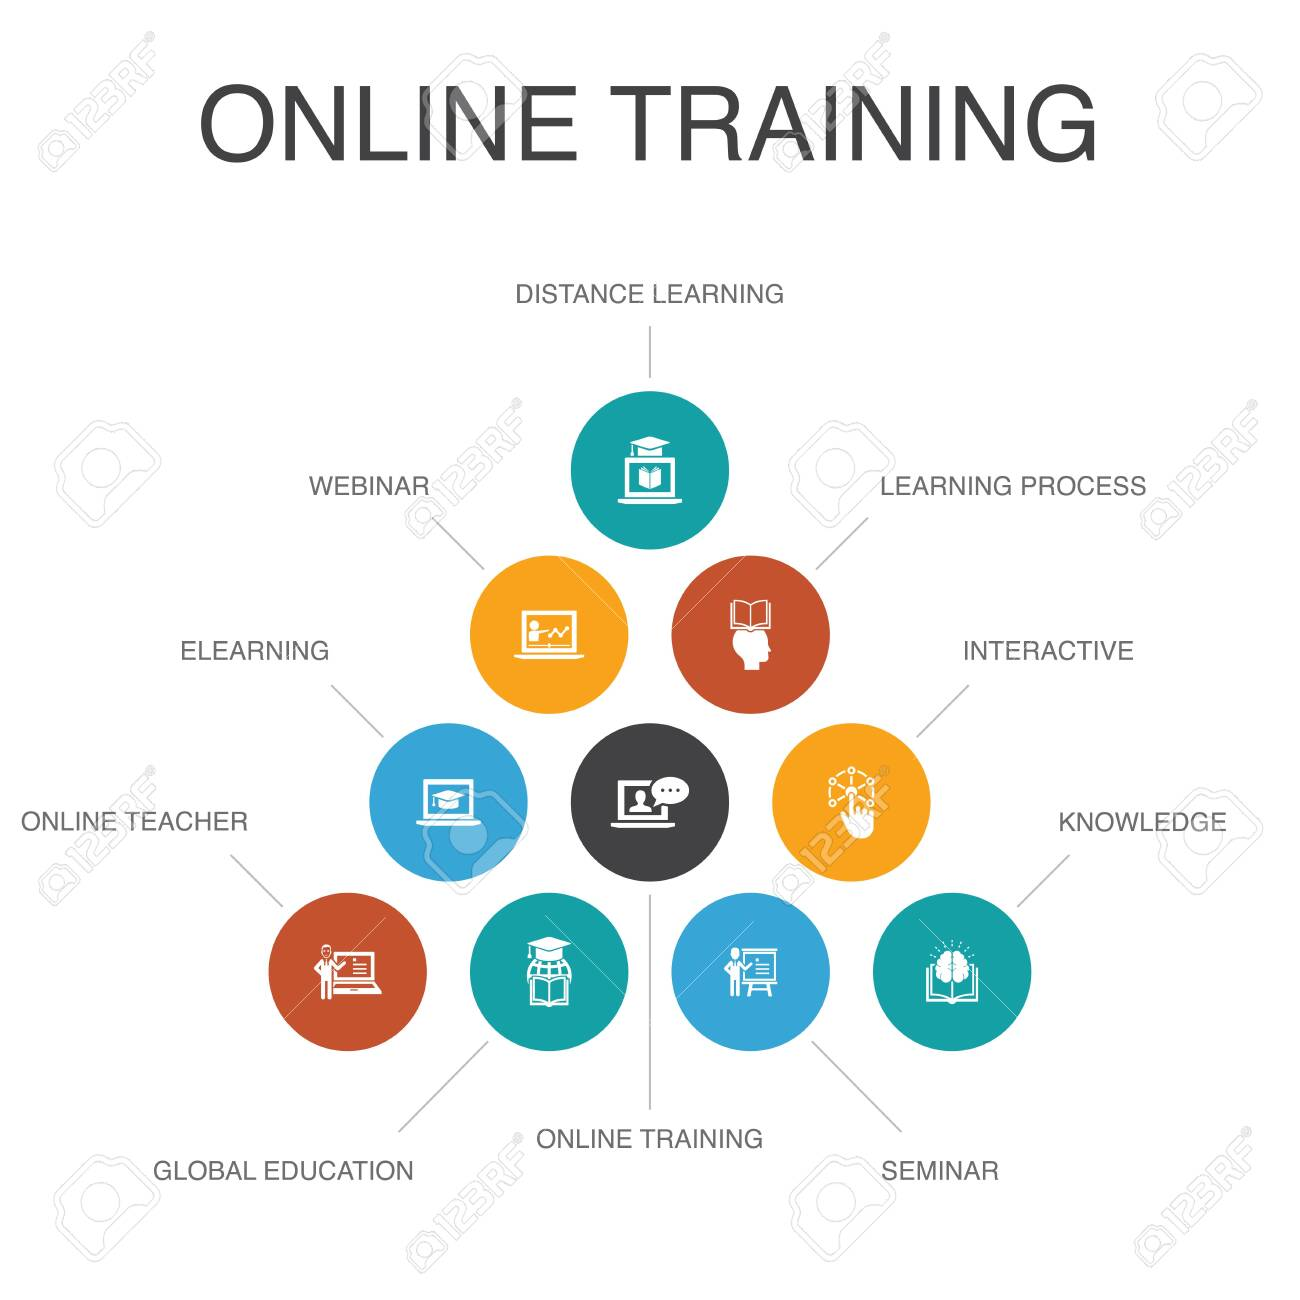 Online Training Infographic 10 Steps Concept Distance Learning Royalty Free Cliparts Vectors And Stock Illustration Image 130313360